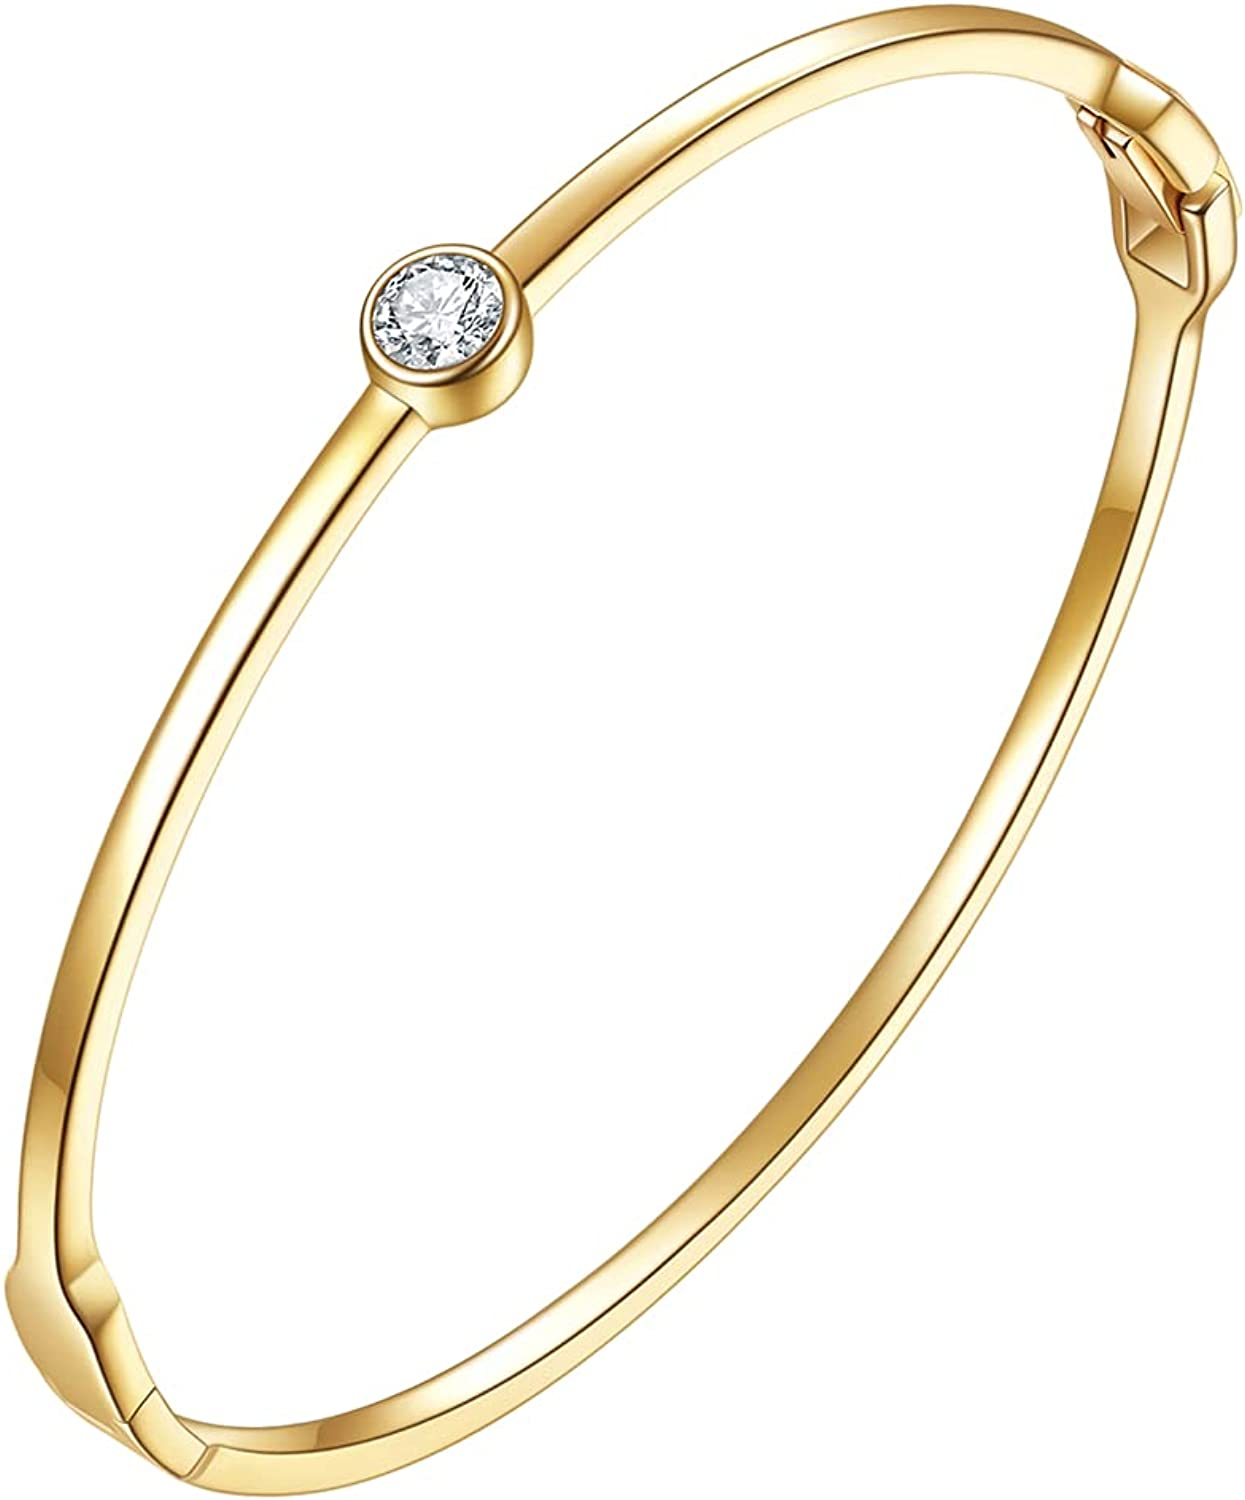 Carat Kitten 14K Gold Plated Simple Bangles Bracelets for Women Teen Girls Womens Dainty Oval Minimalist bangle Bracelets with Cubic Zirconia Best Gifts for Mother Wife Friends Lovers